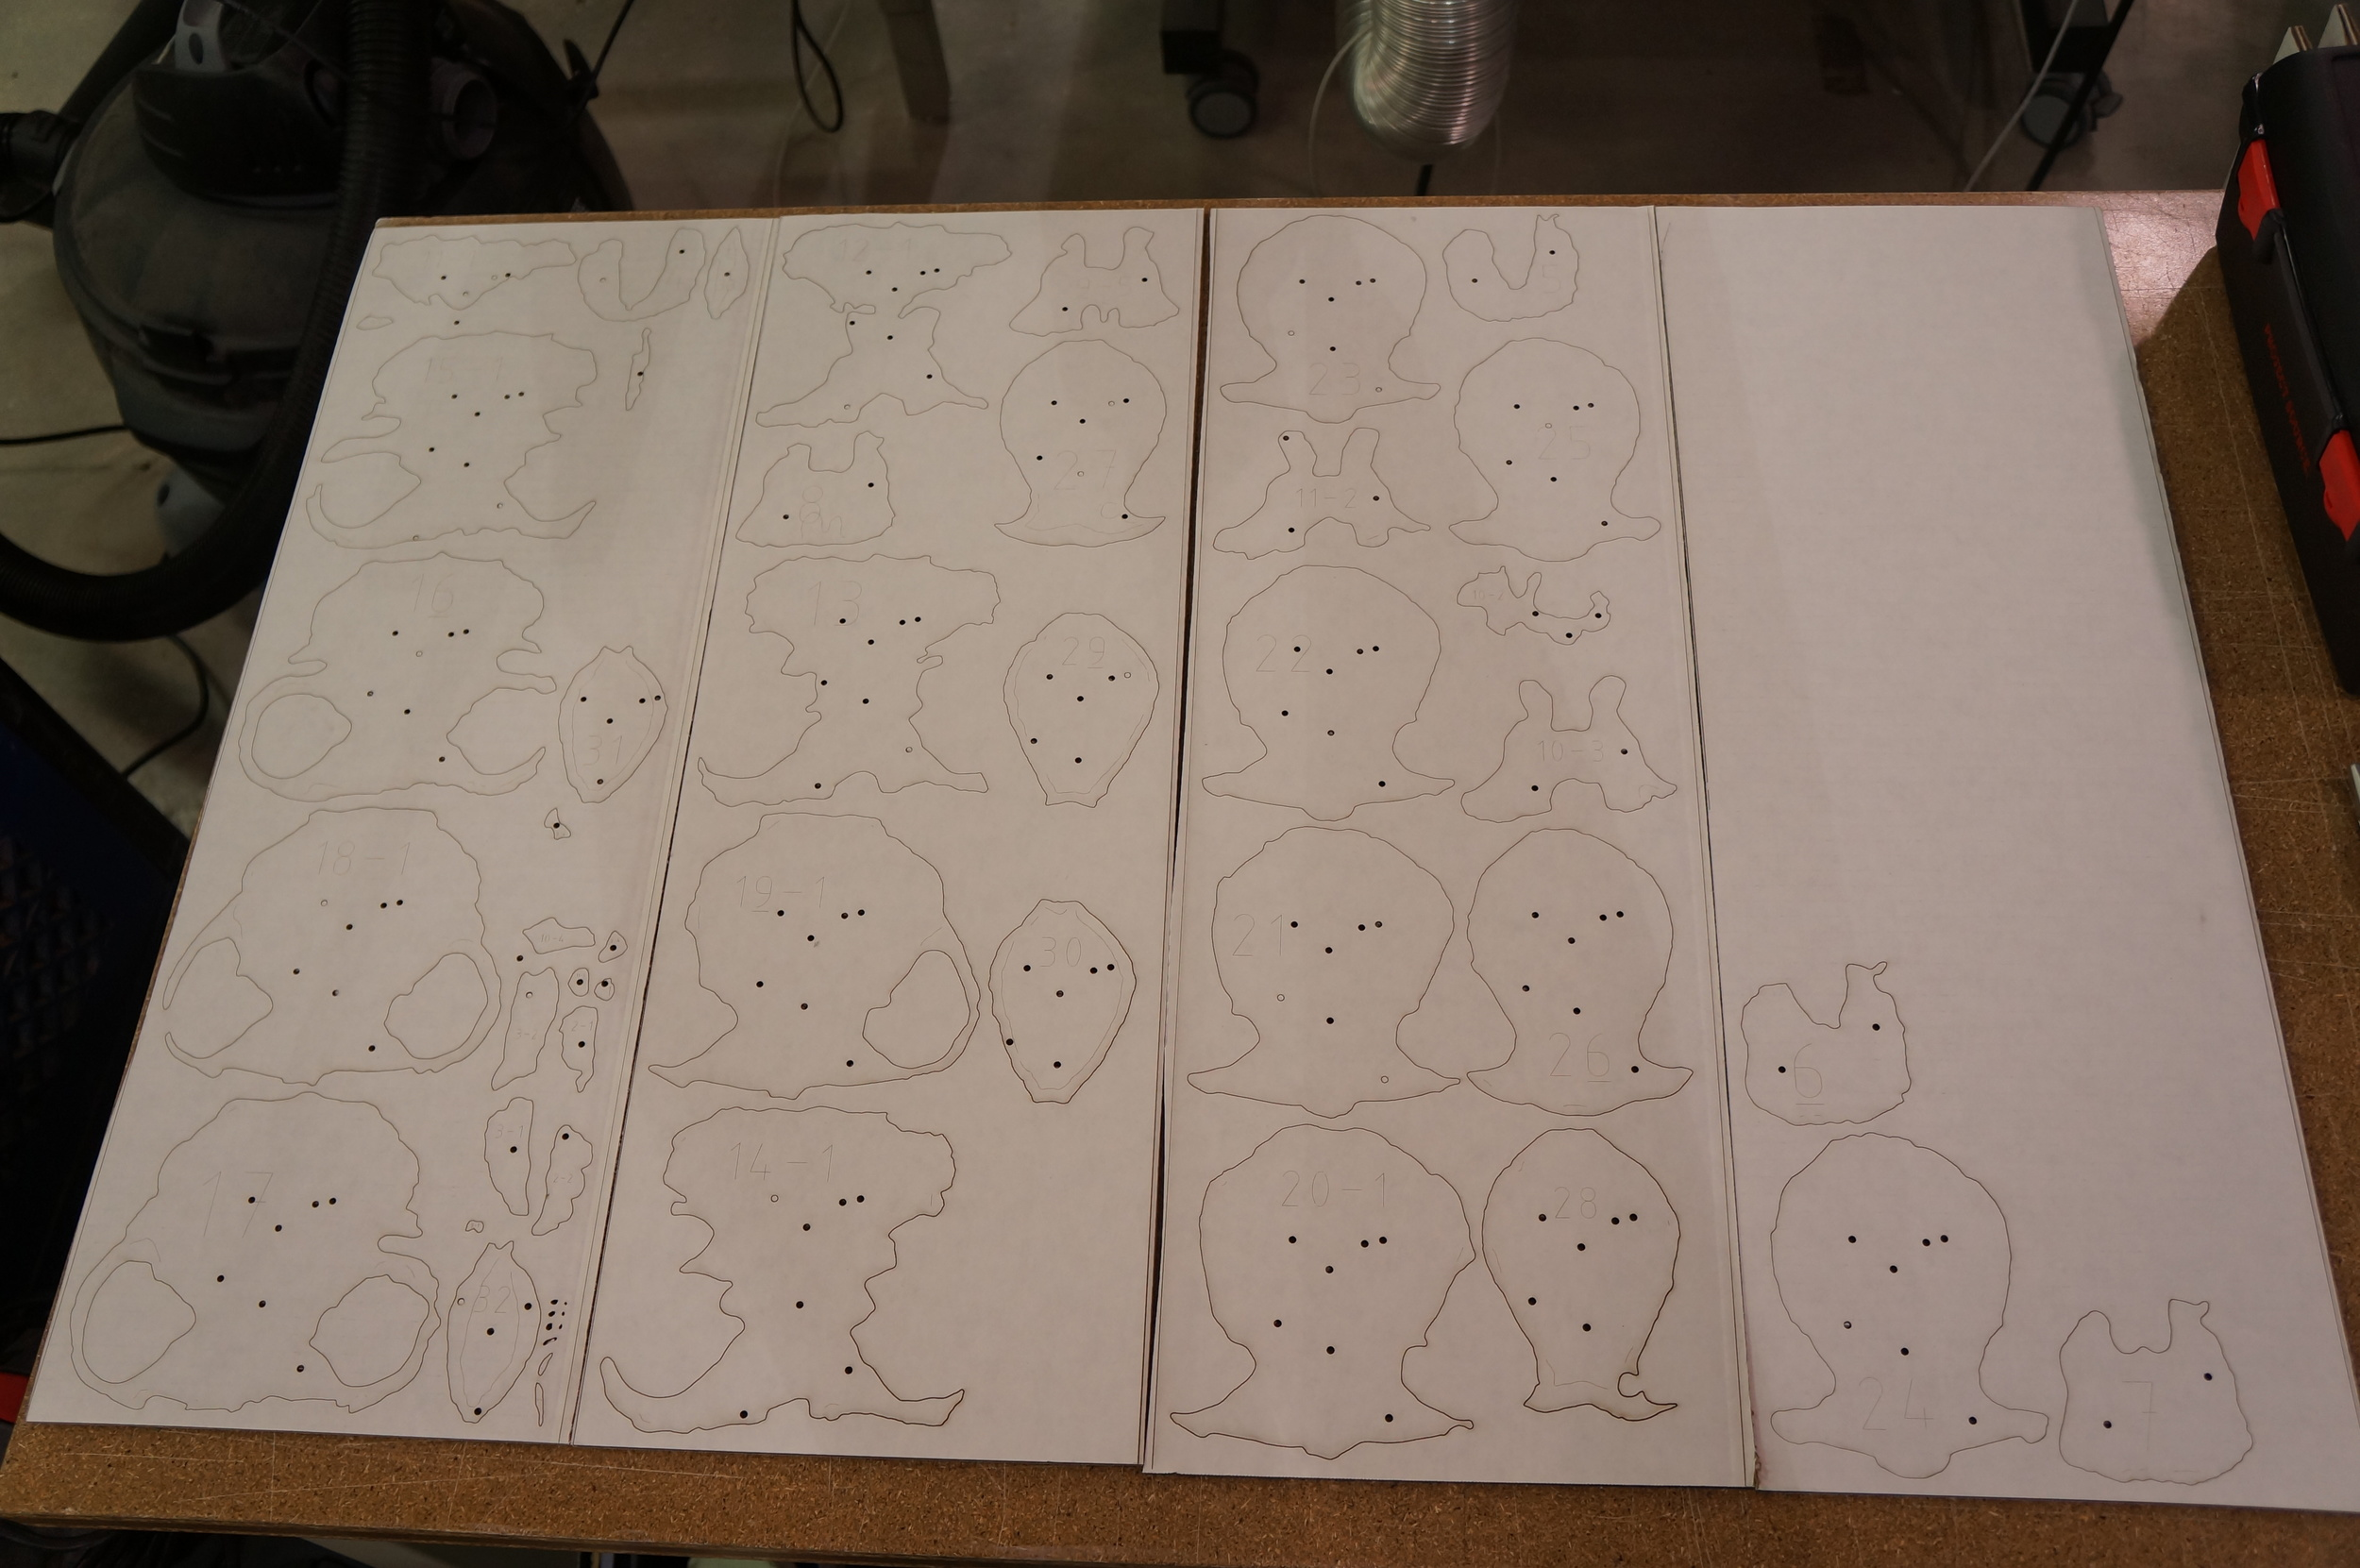 All of the pieces cut out, ready to be assembled. Dark holes are for the bamboo skewers and gluing alignment.